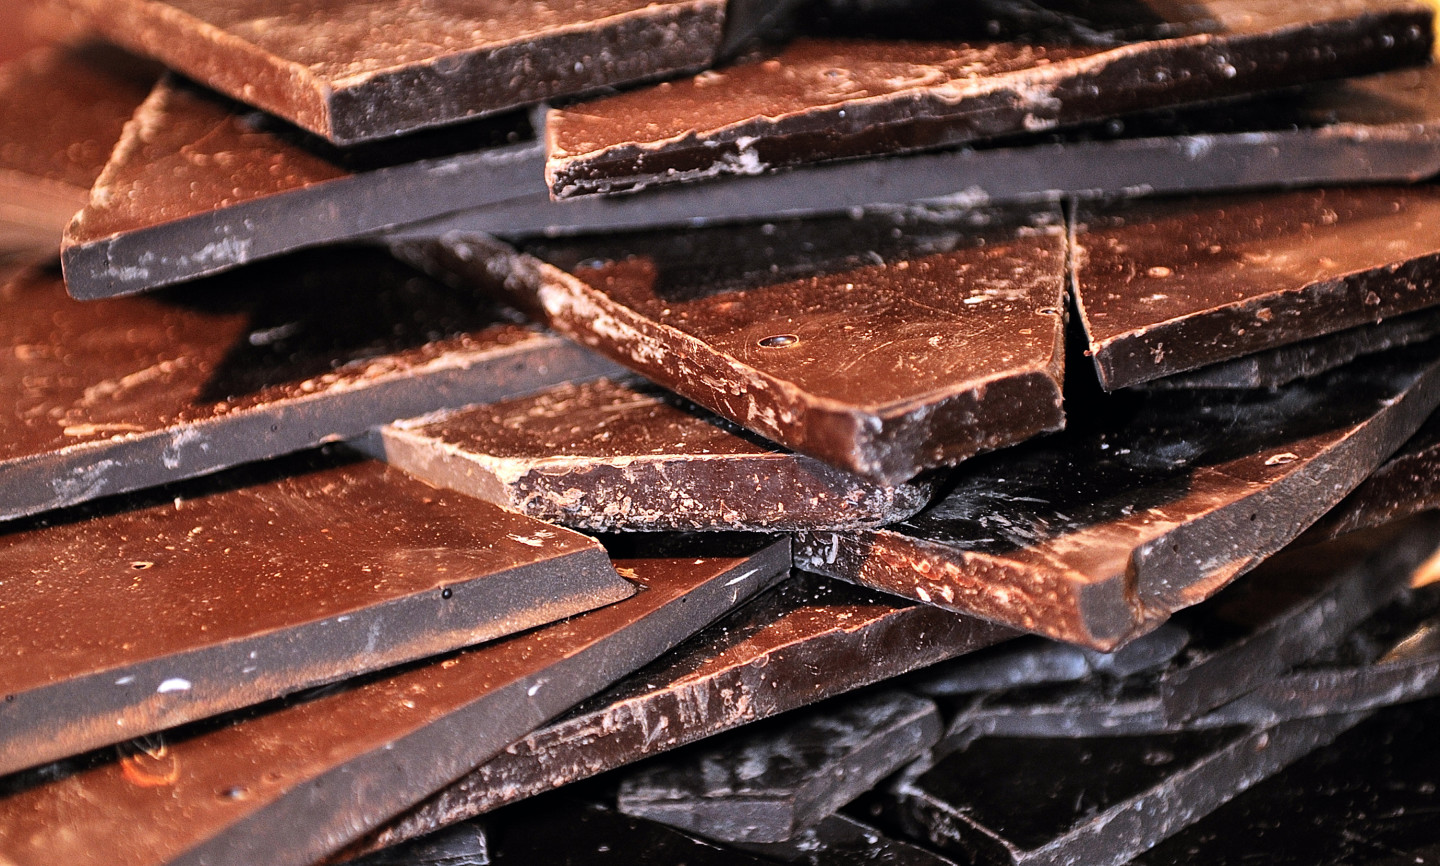 Chocolate, Chocolate, It's Good For Your Heart, Study Finds